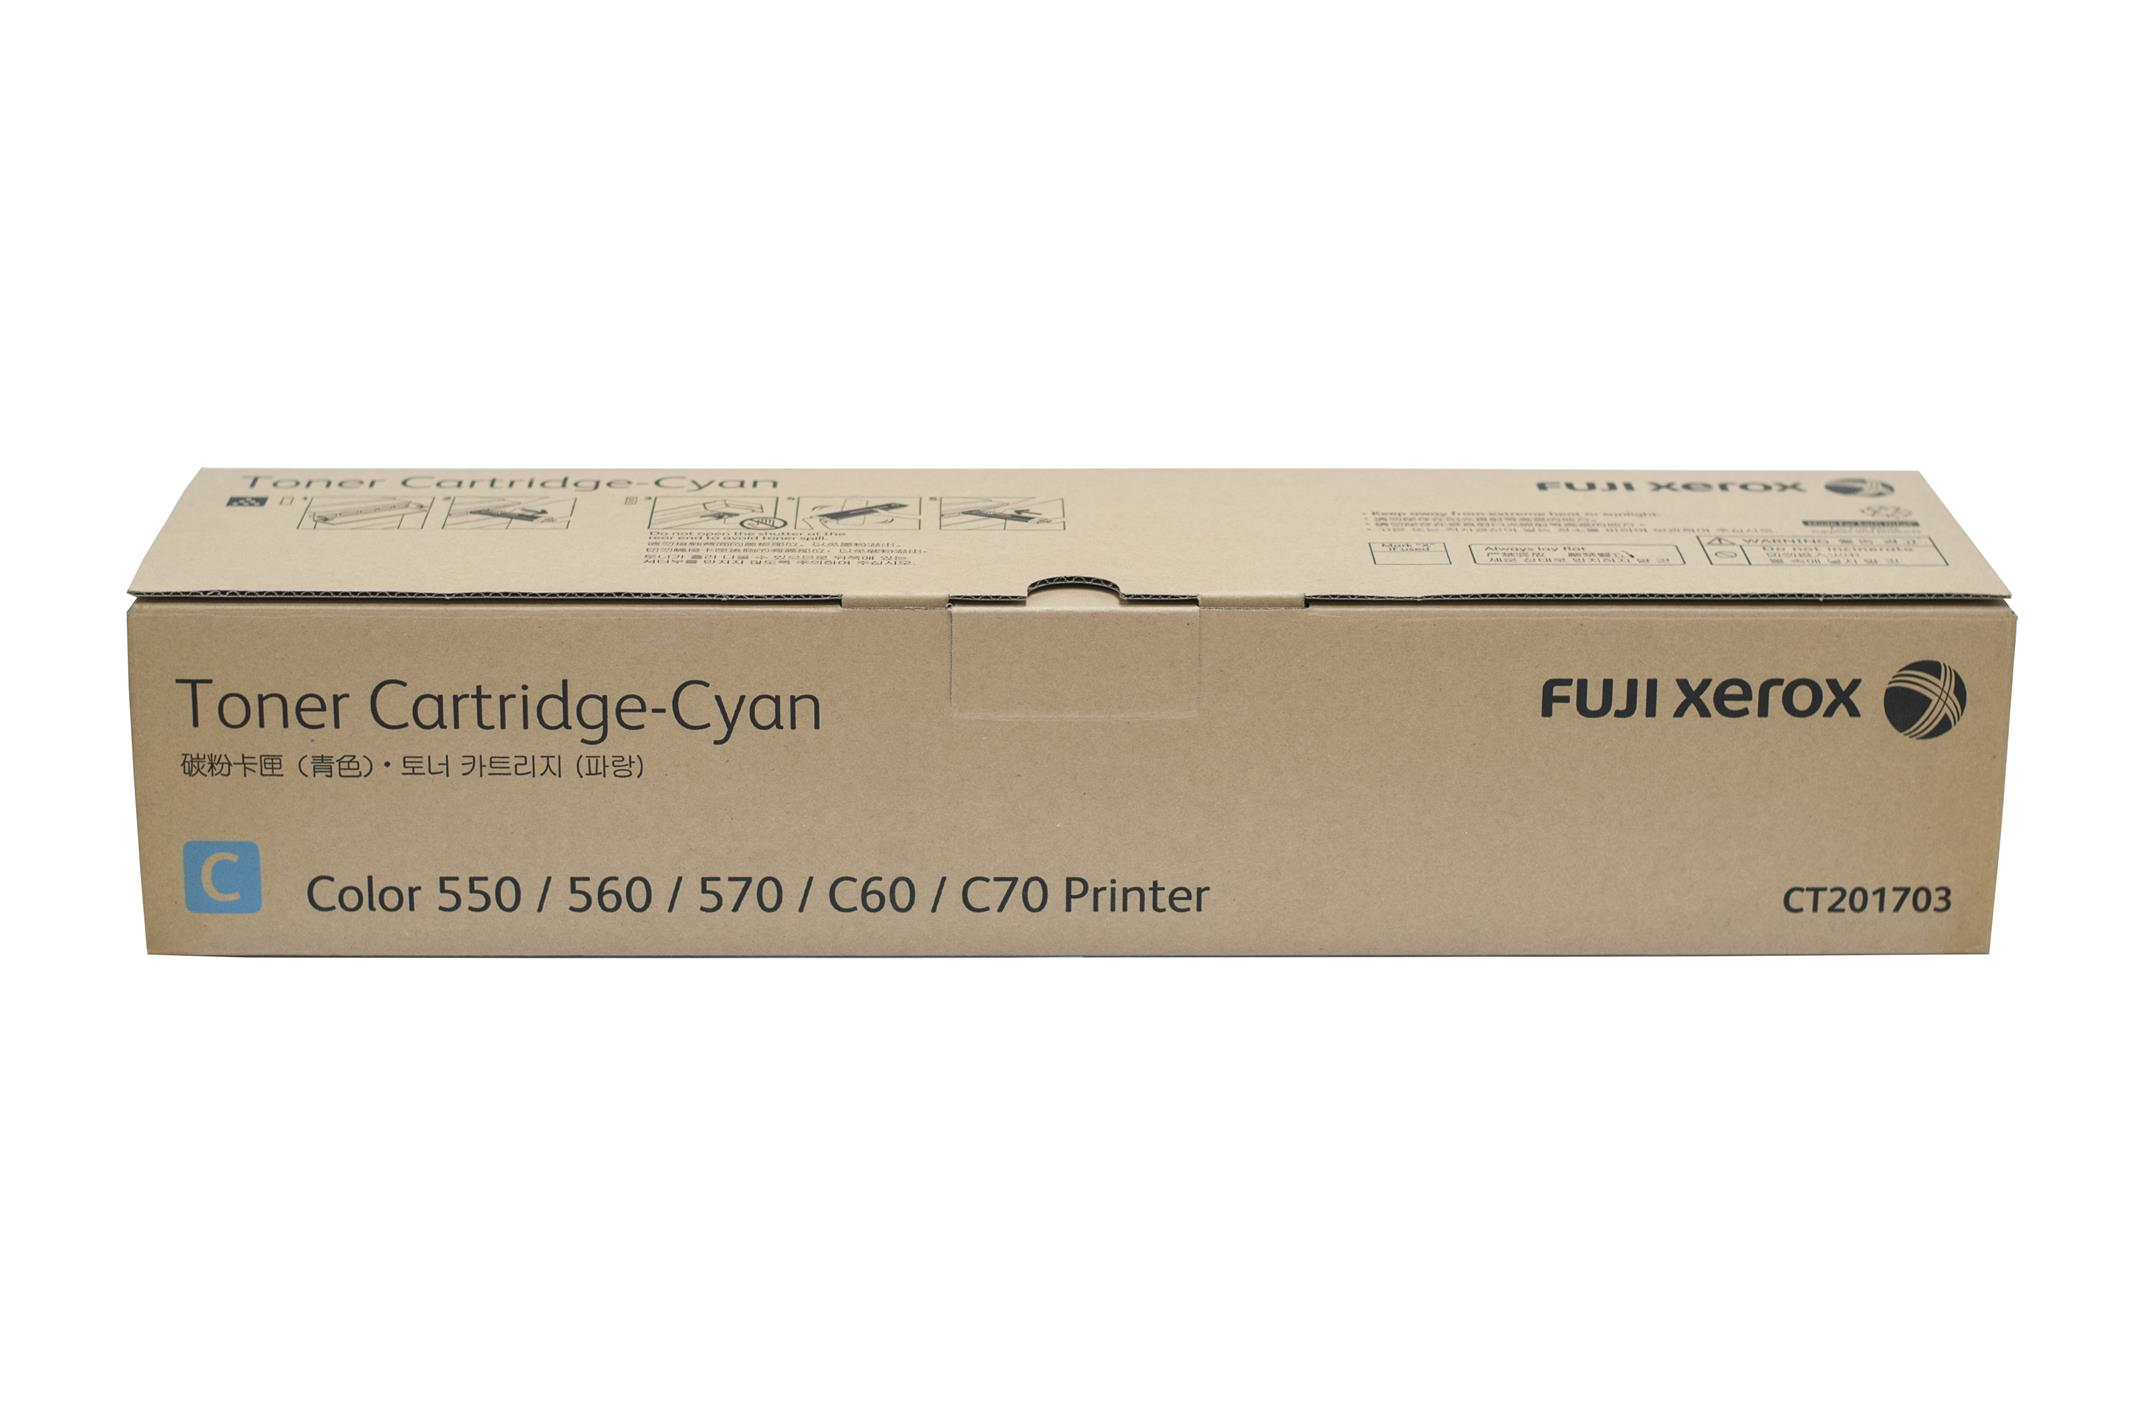 Fuji Xerox CT201703 Cyan (Genuine) 550 560 570 C60 C70 201703